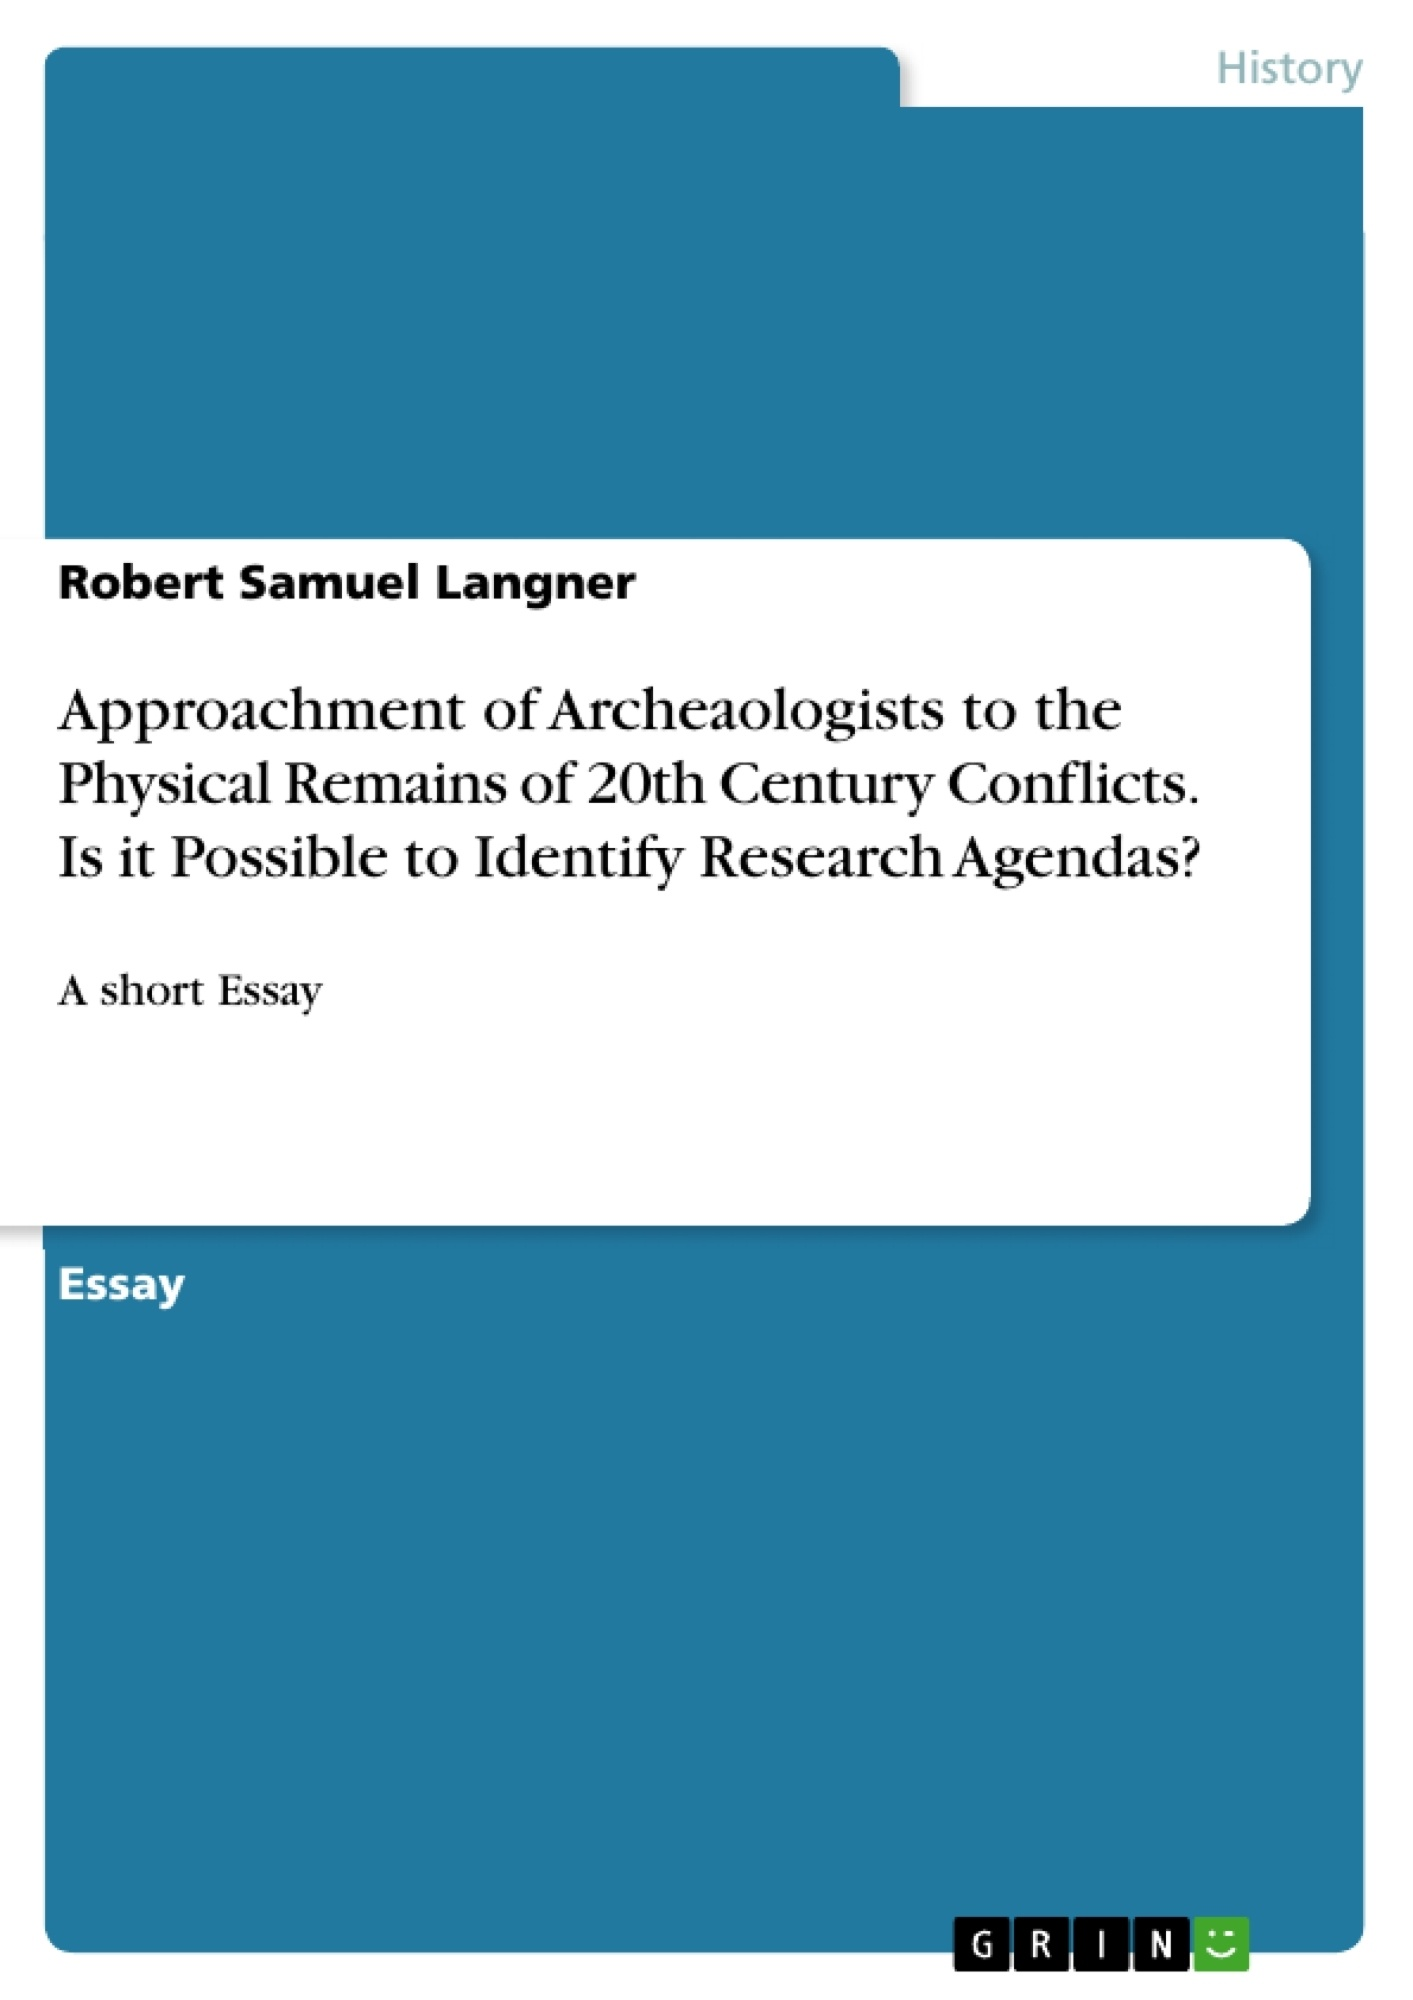 Title: Approachment of Archeaologists to the Physical Remains of 20th Century Conflicts. Is it Possible to Identify Research Agendas?